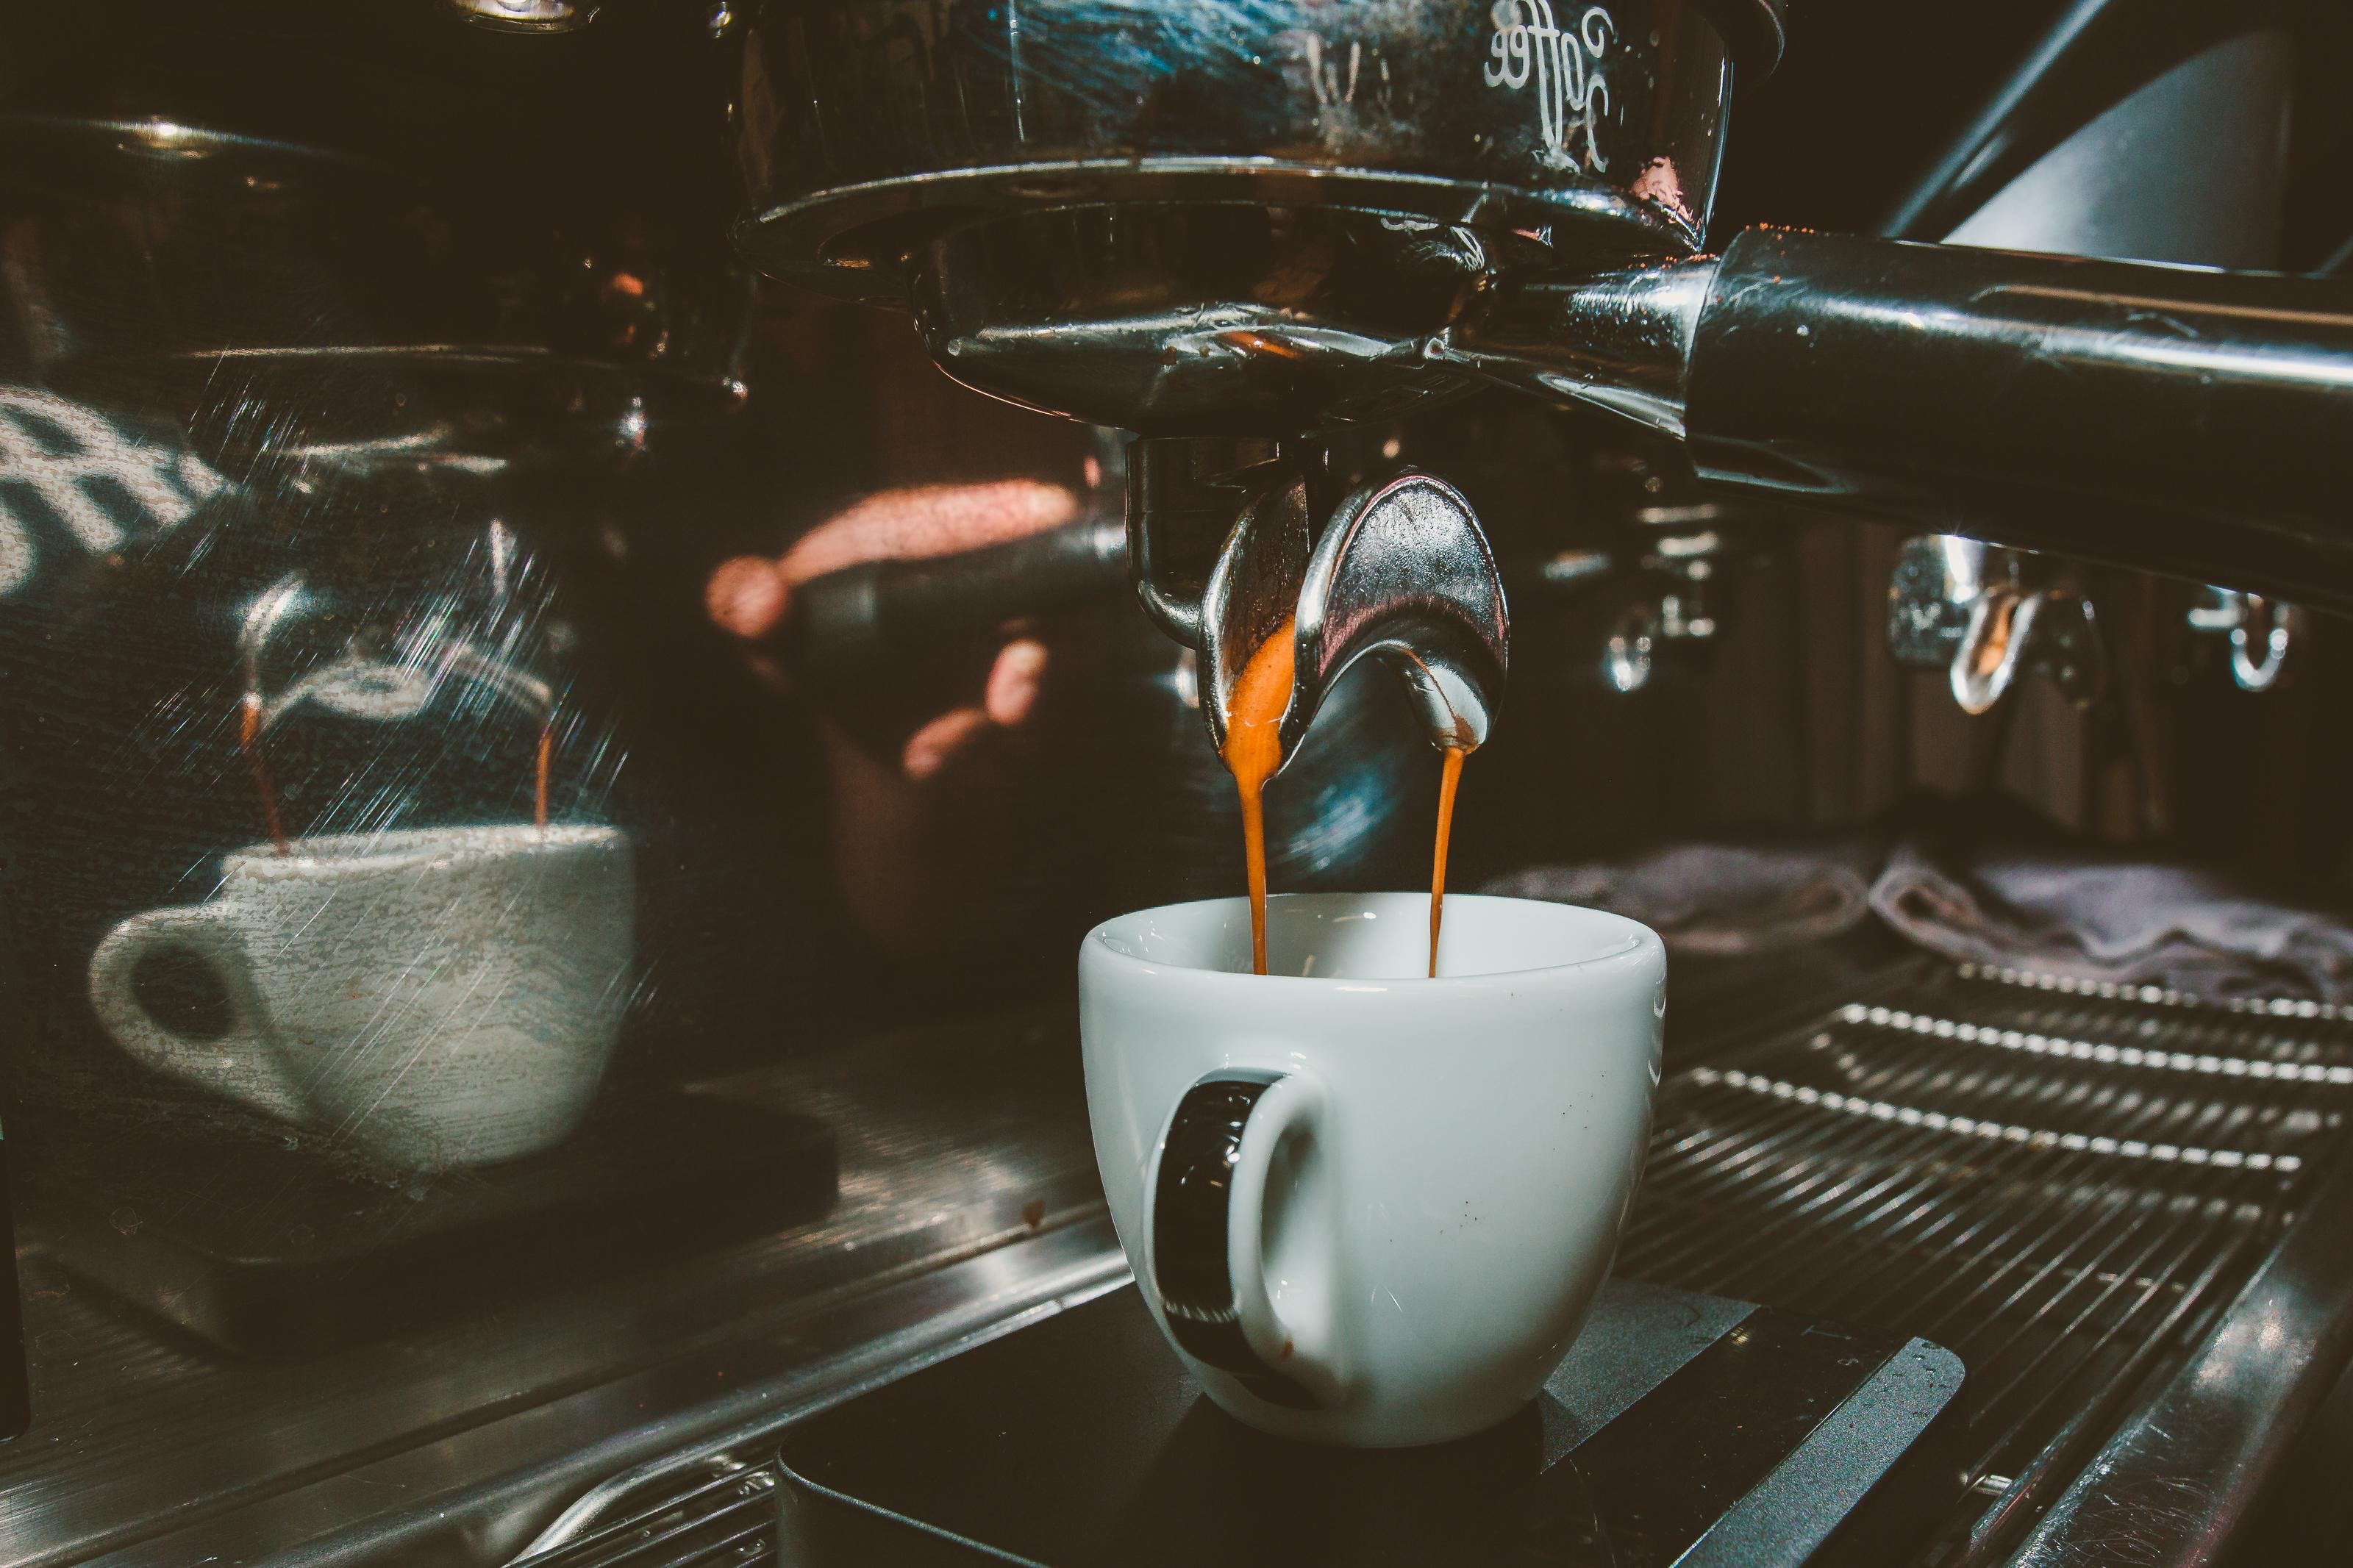 Introduction to Espresso and Milk